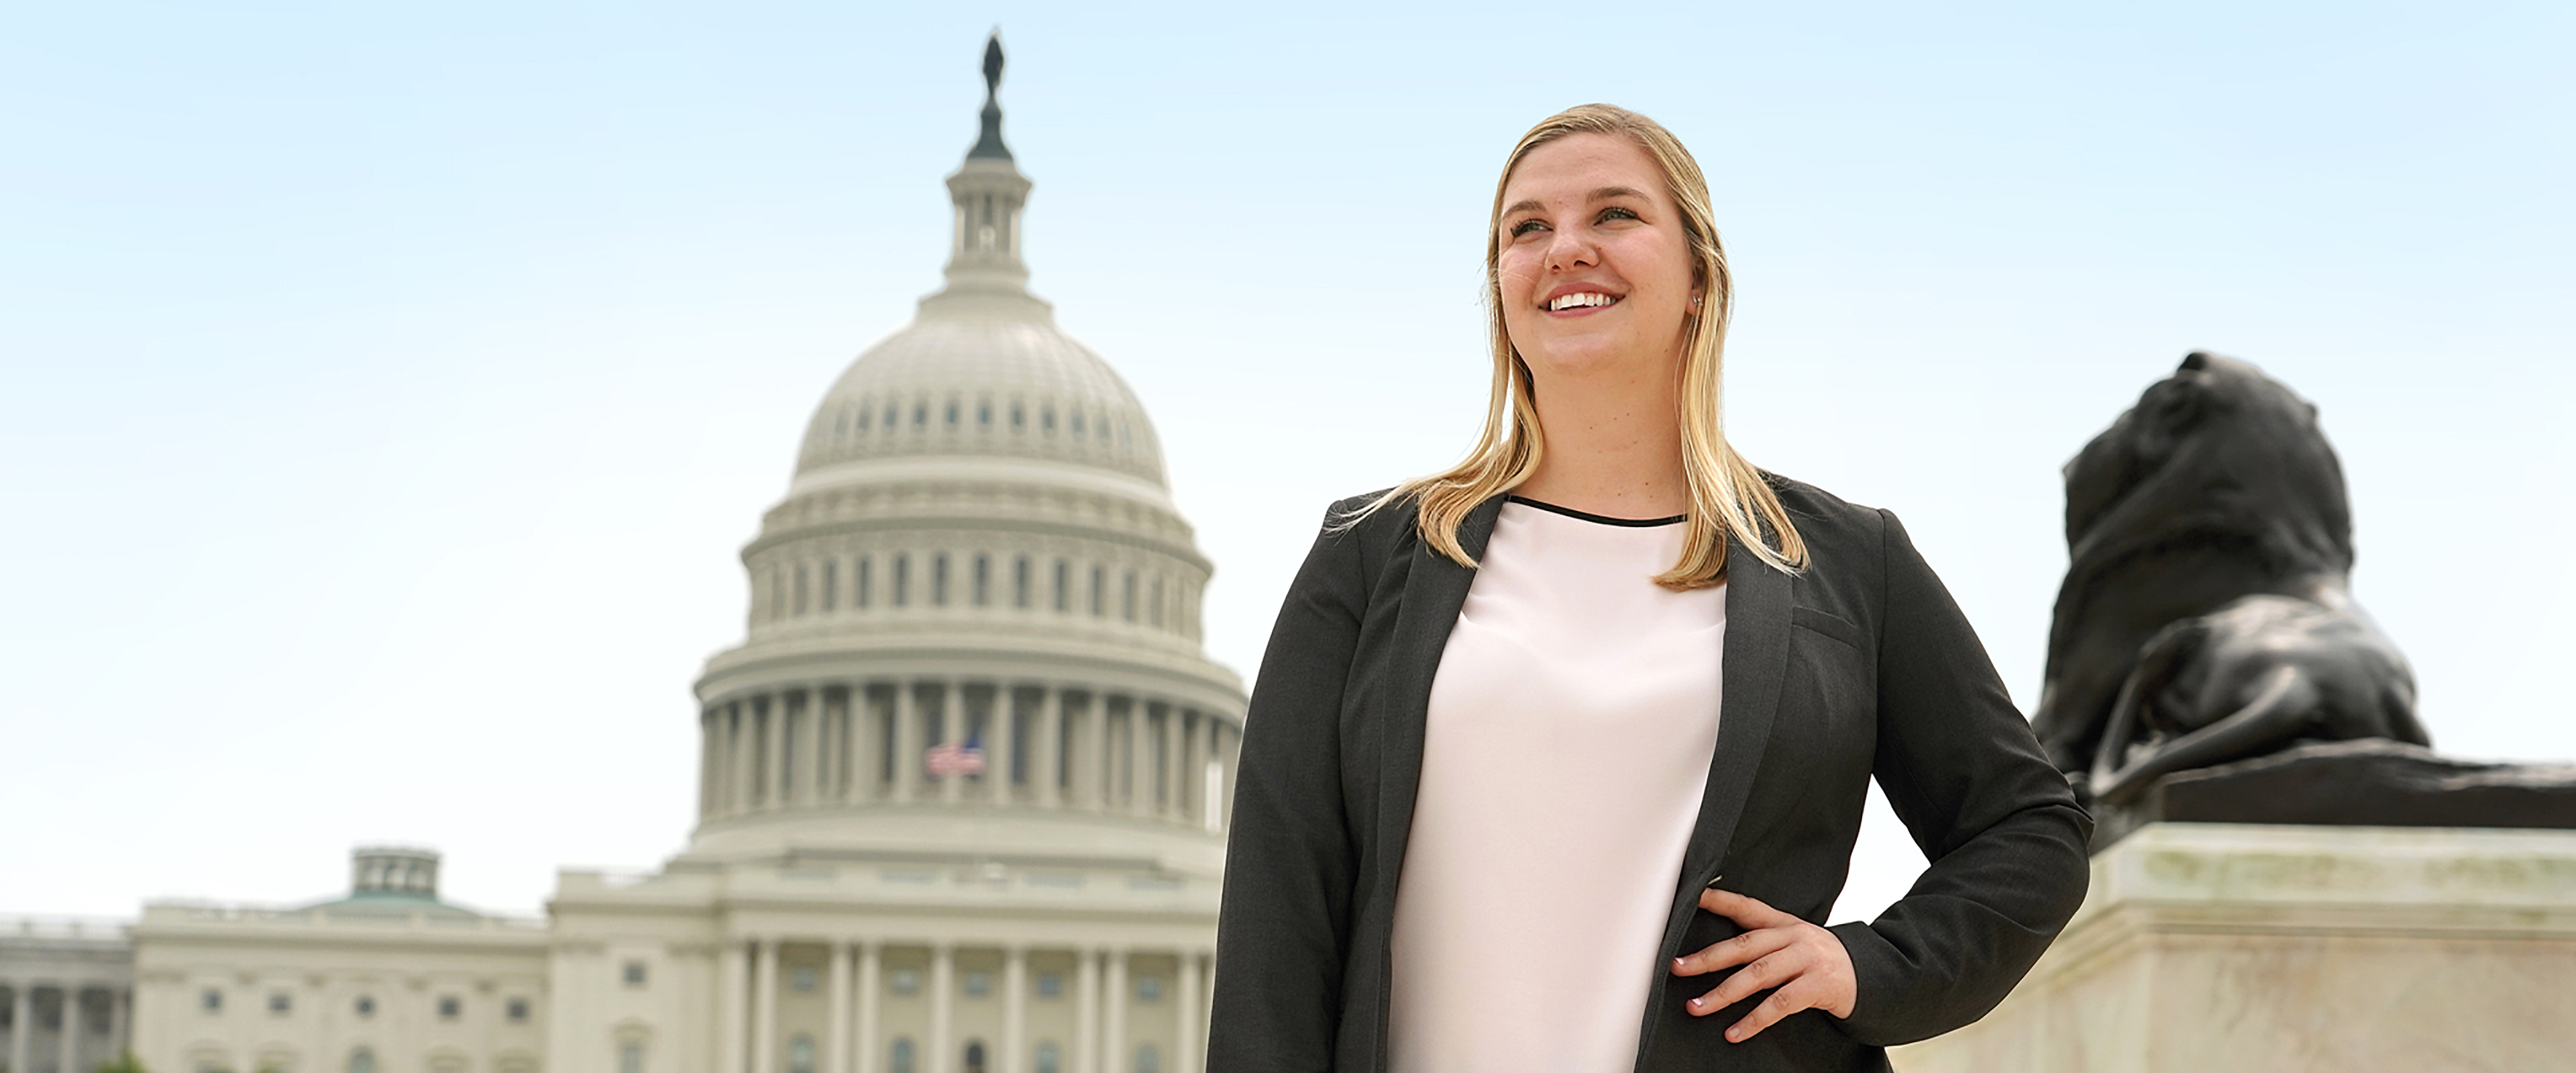 Slideshow image: WMU student poses in front of the US Capitol building in Washington, D.C.